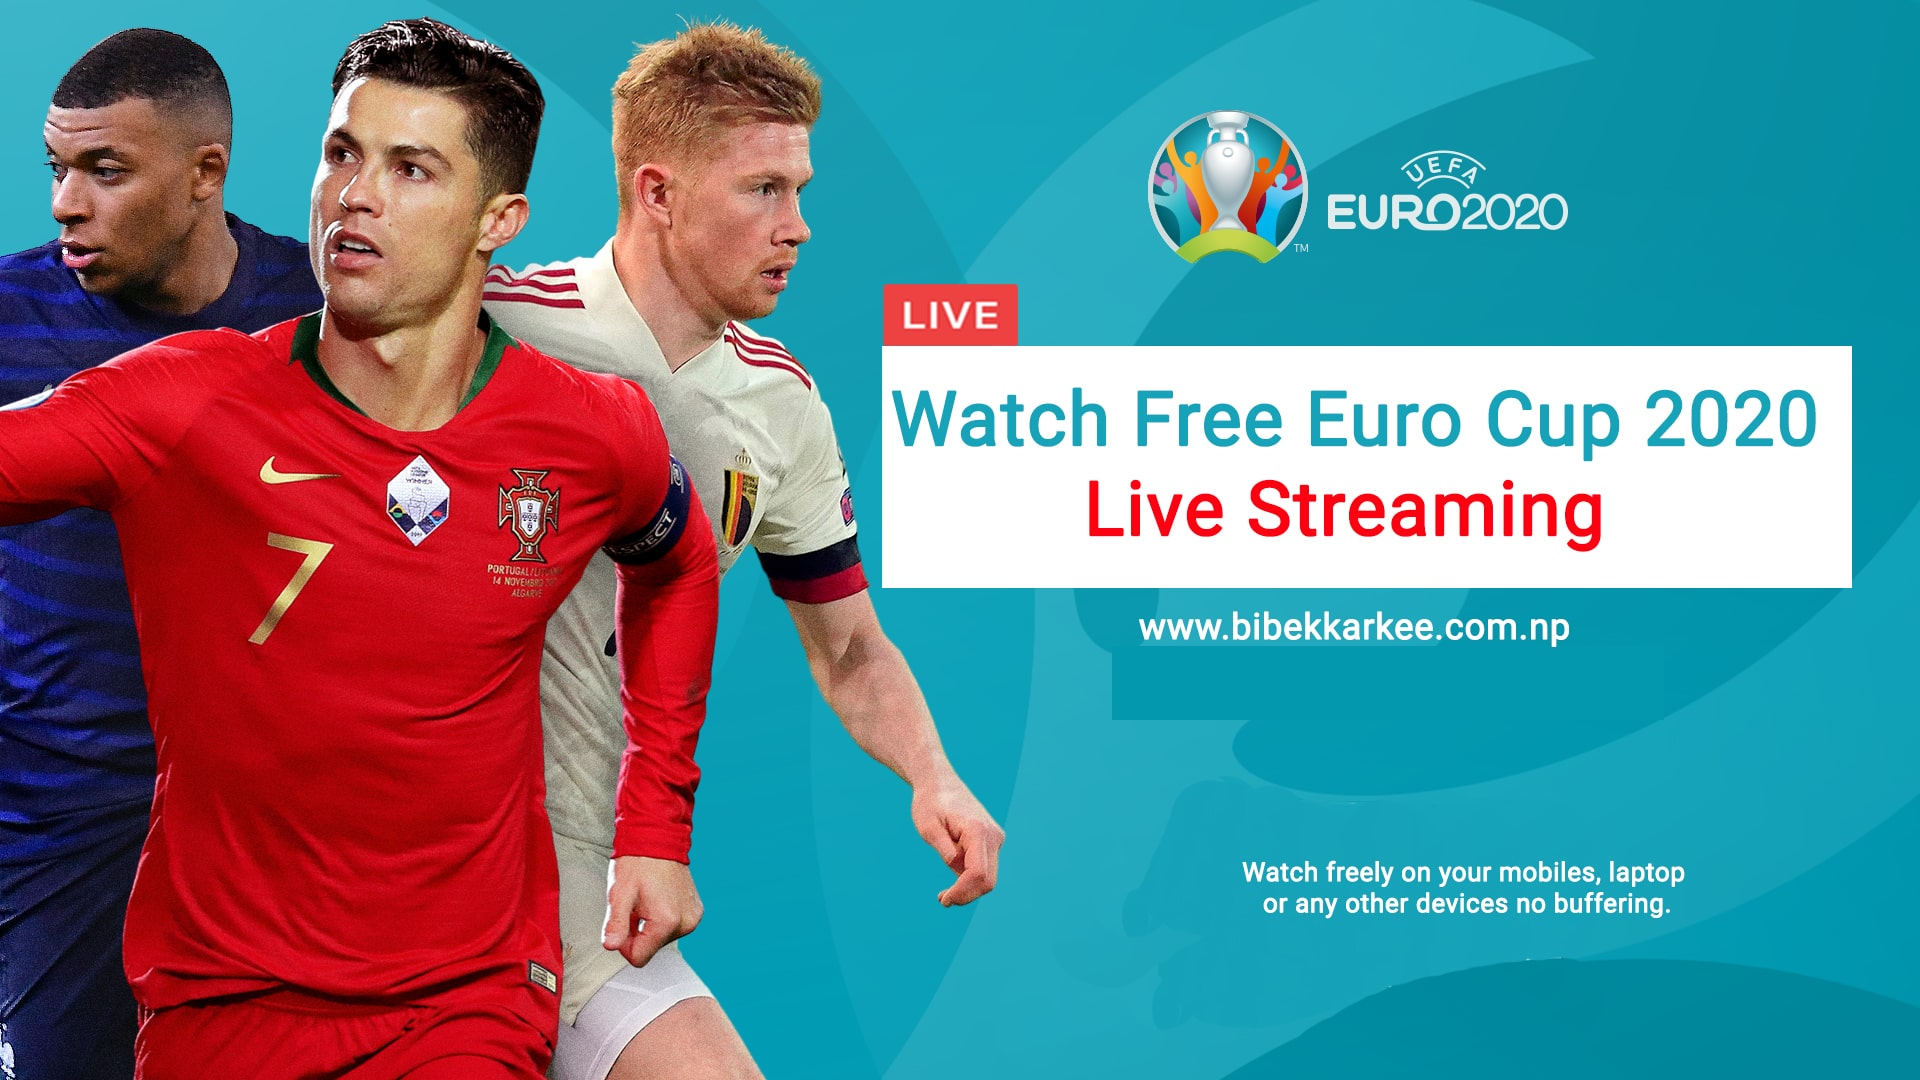 Euro Cup 2020 Live Streaming